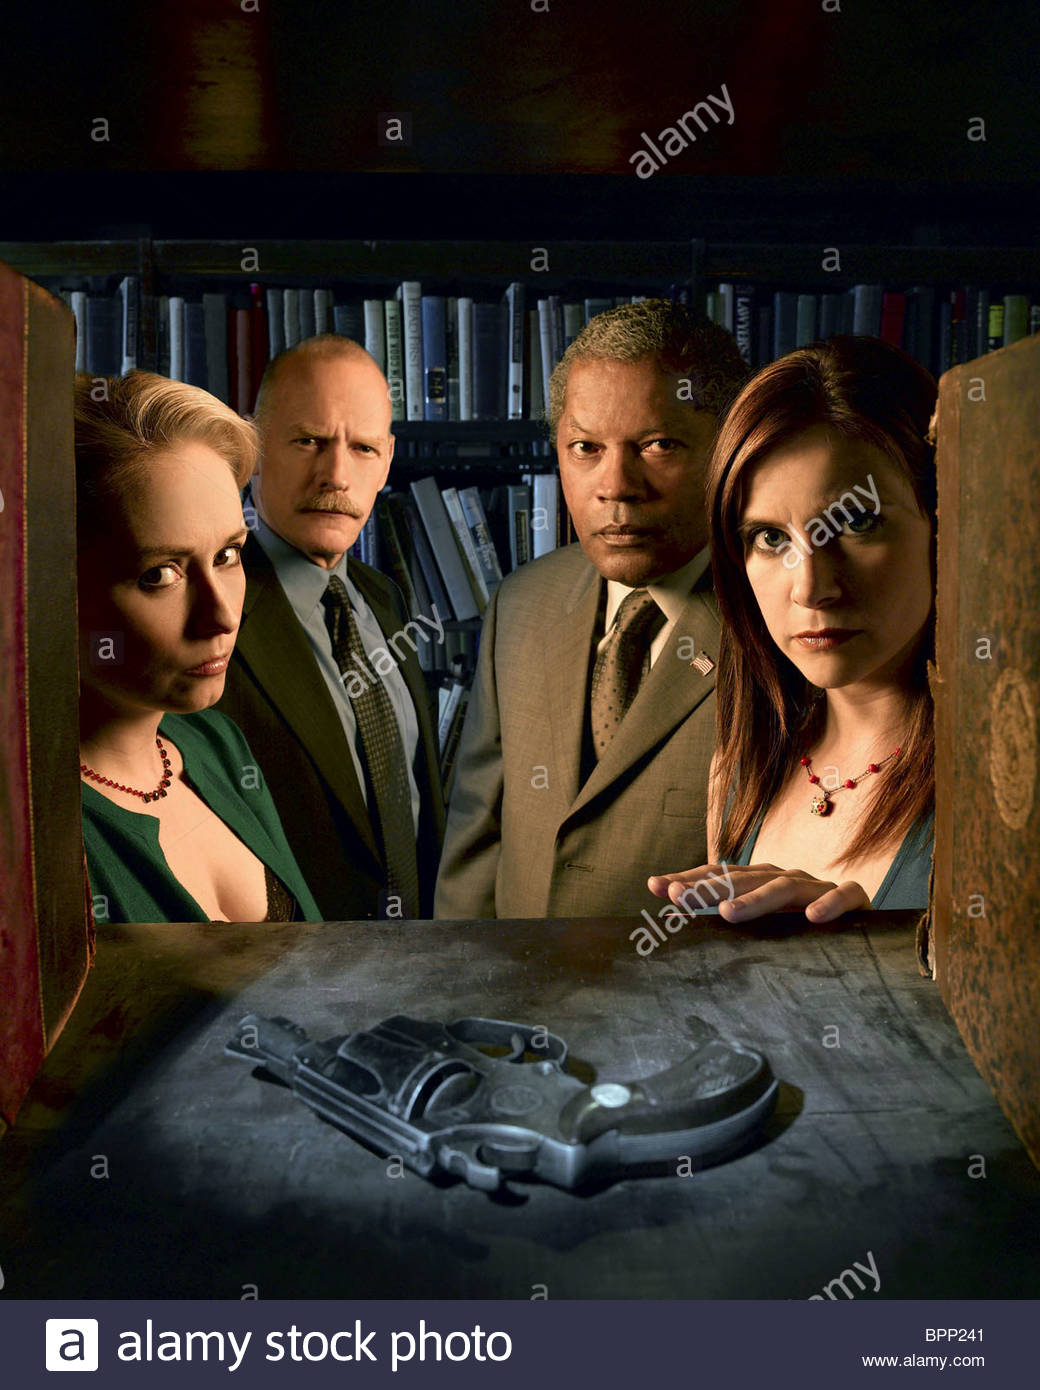 NINA SIEMASZKO CASEY SANDER CLARENCE WILLIAMS III & KELLIE MARTIN MYSTERY WOMAN: SING ME A MURDER (2005) Stock Photo